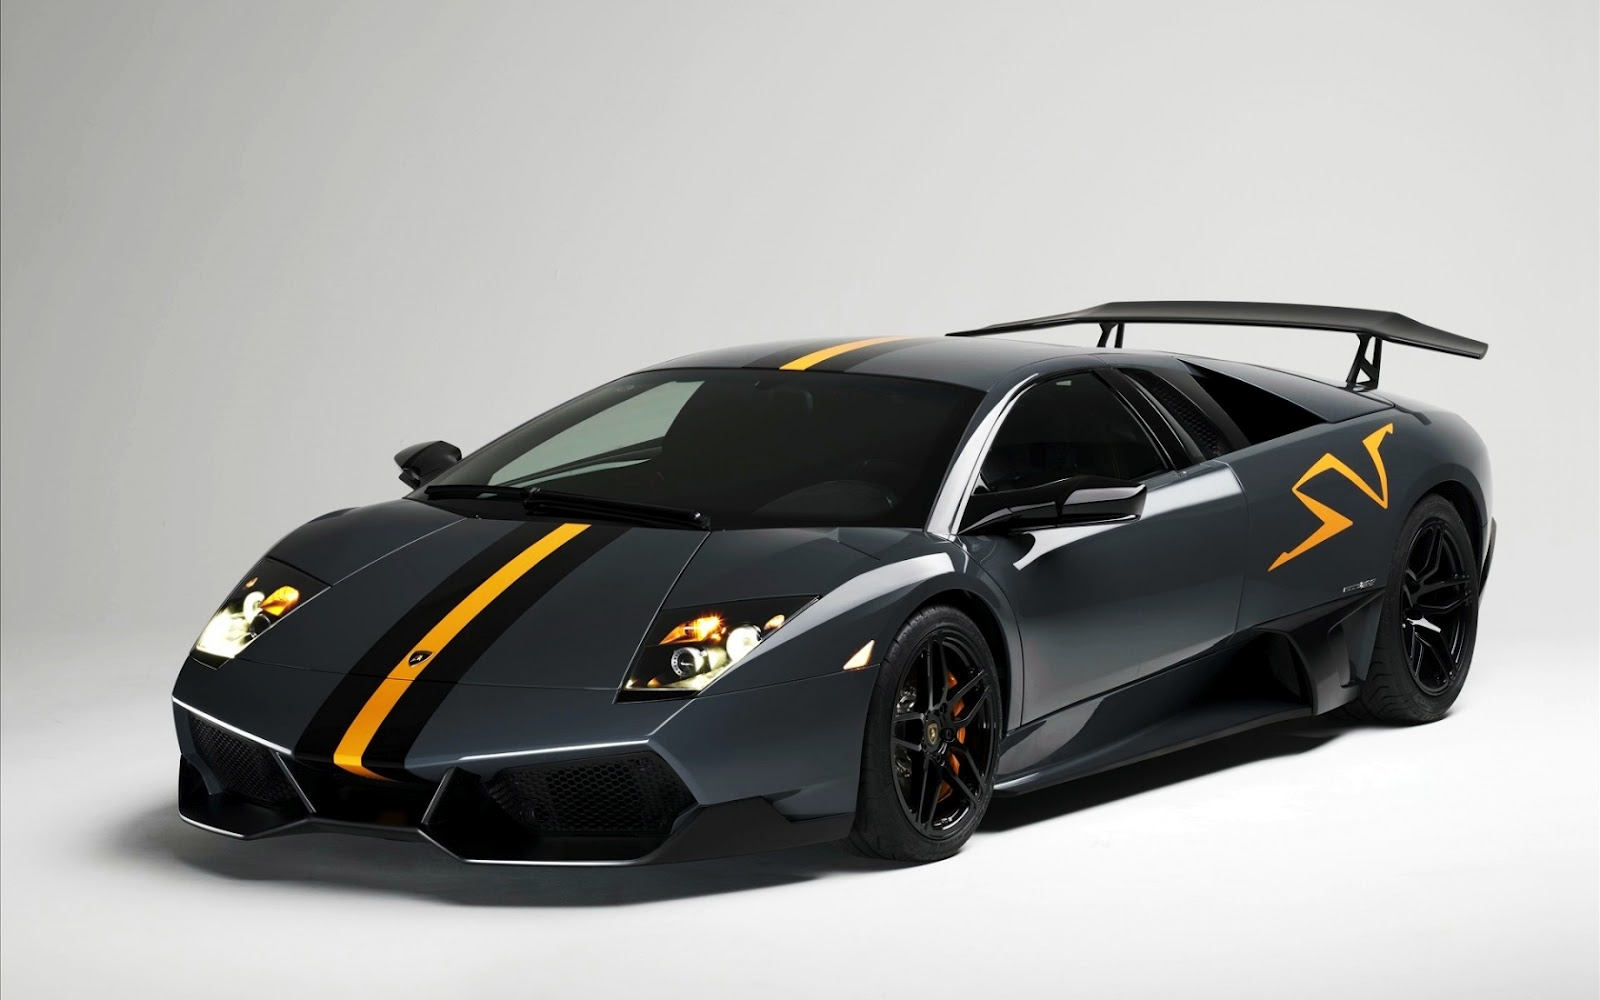 HIGH DEFINITION 1080p wallpapers of Lamborghini: 1080p wallpapers of Lamborghini